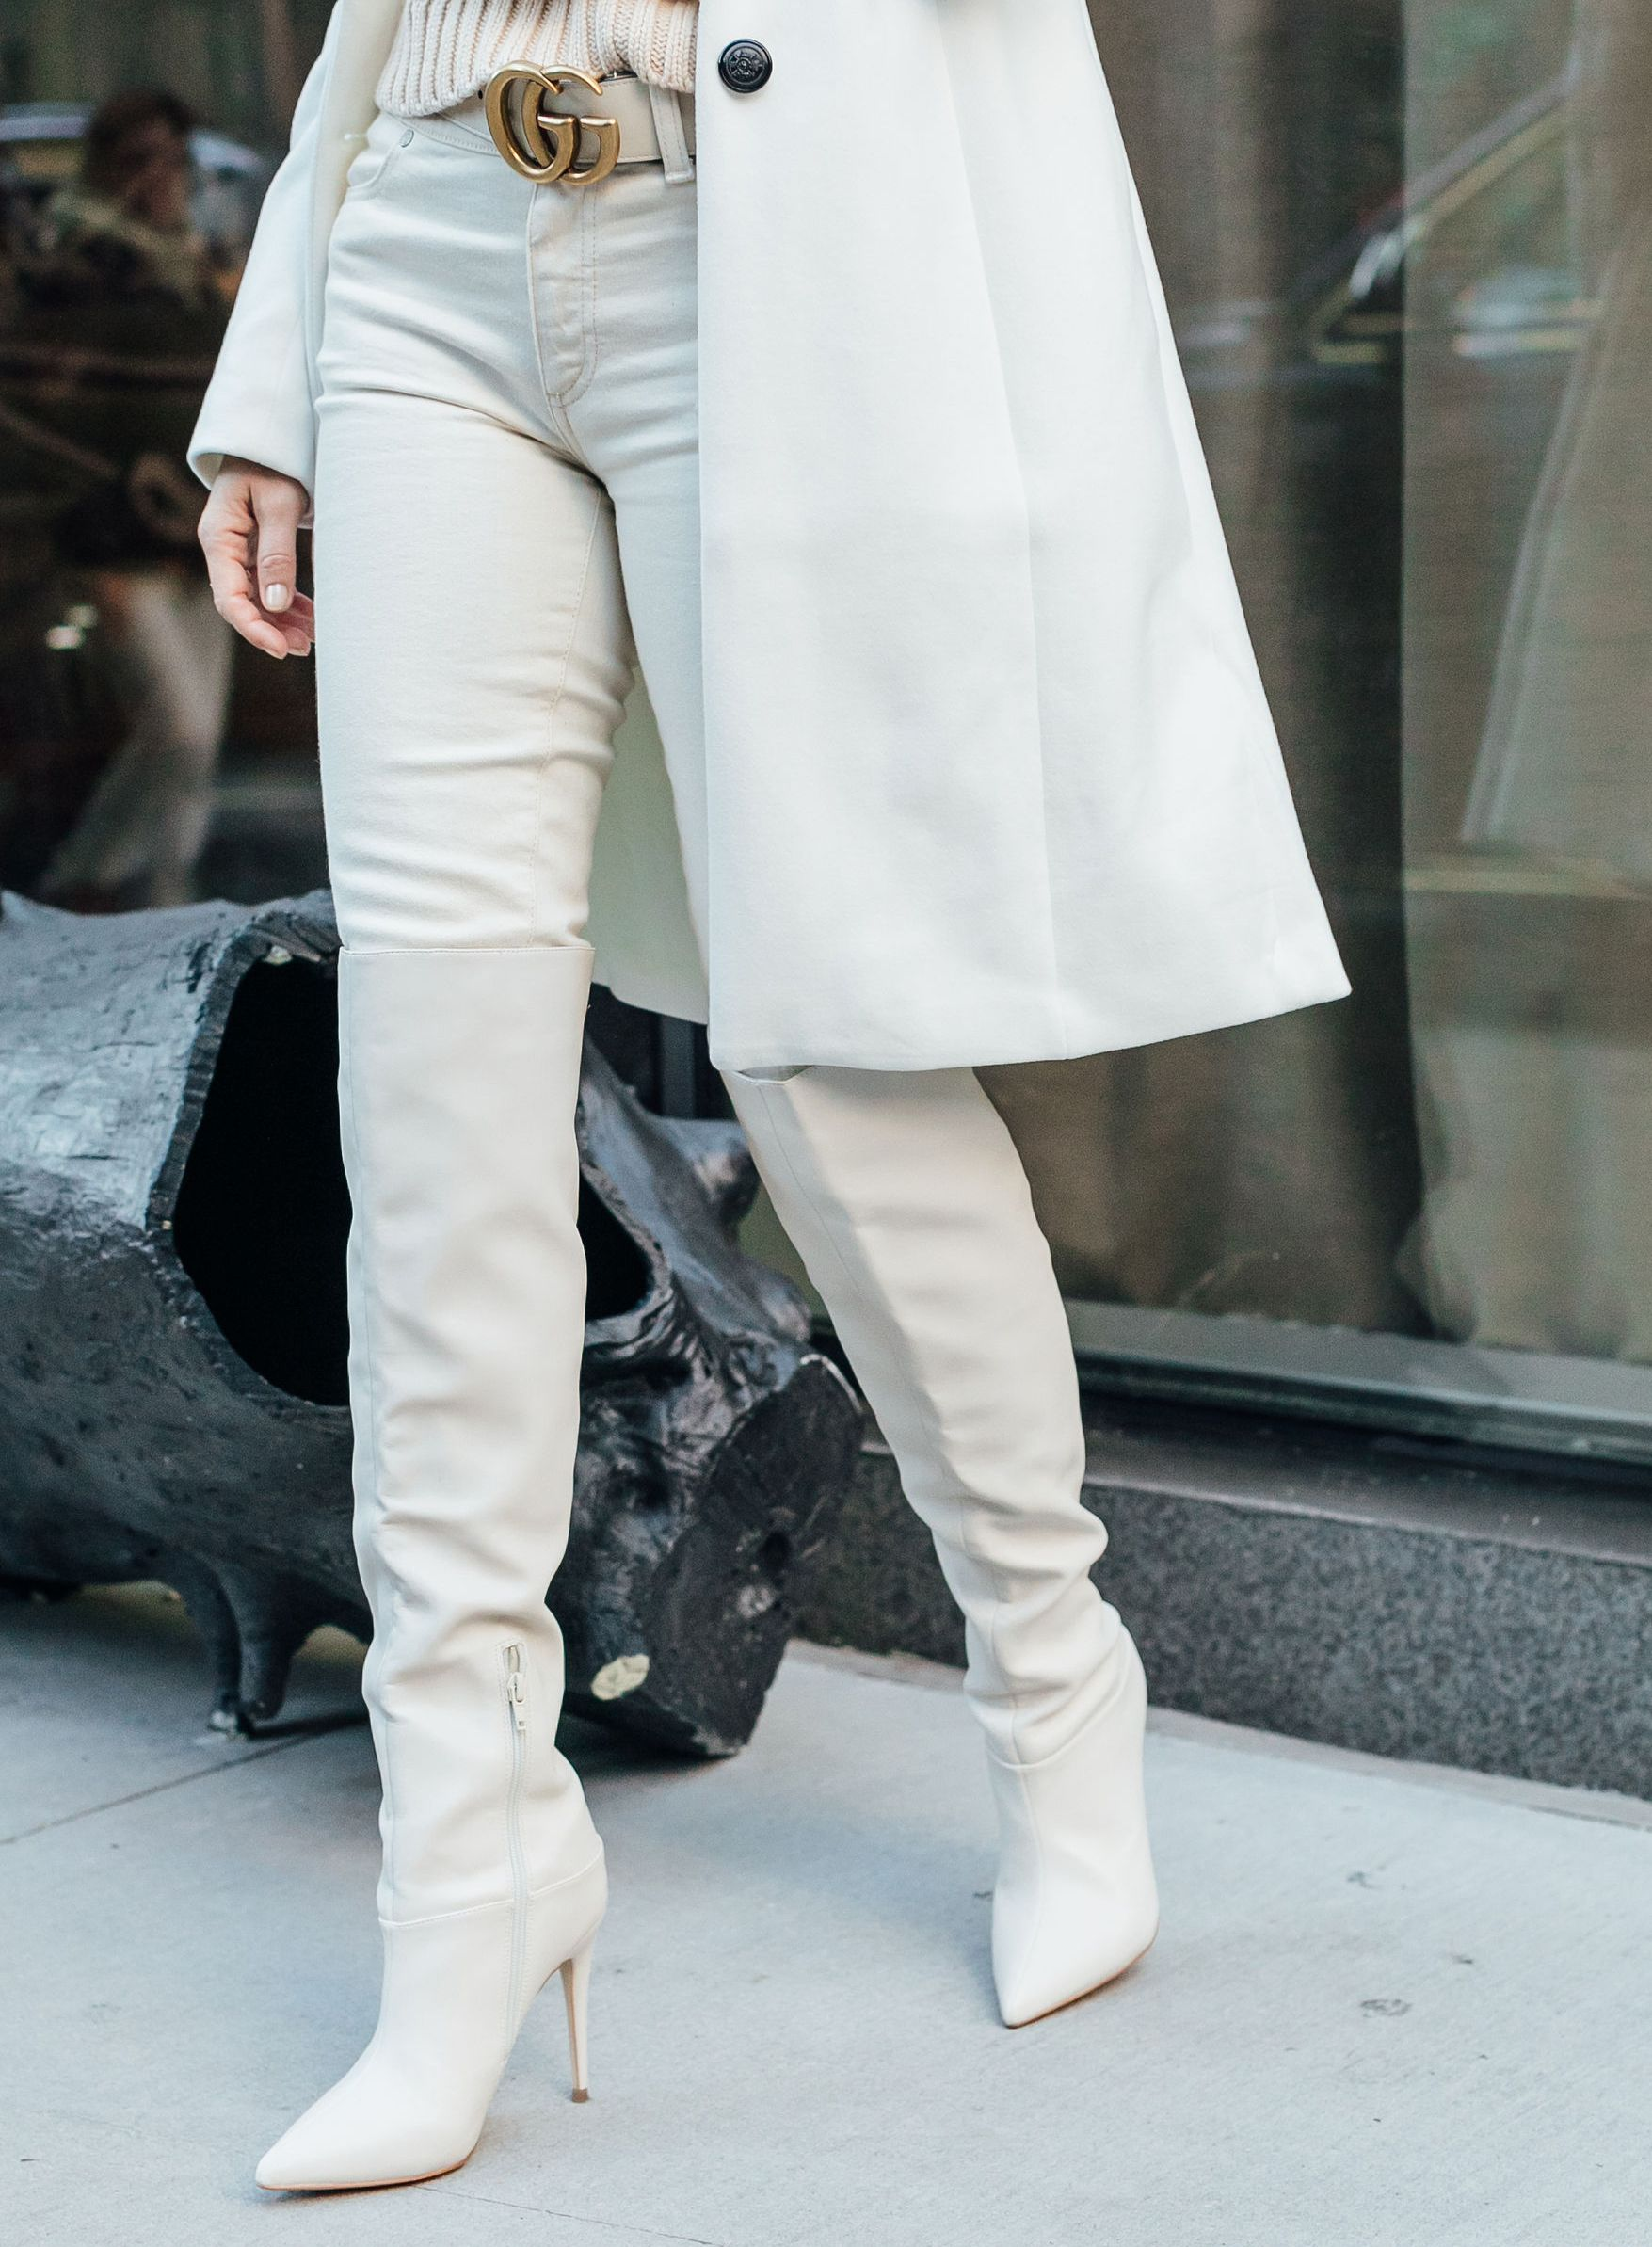 8263bc30b46 Sydne Style wears guess white over the knee boots for winter shoe trends   overthekneeboots  whiteboots  boots  sydnesummer